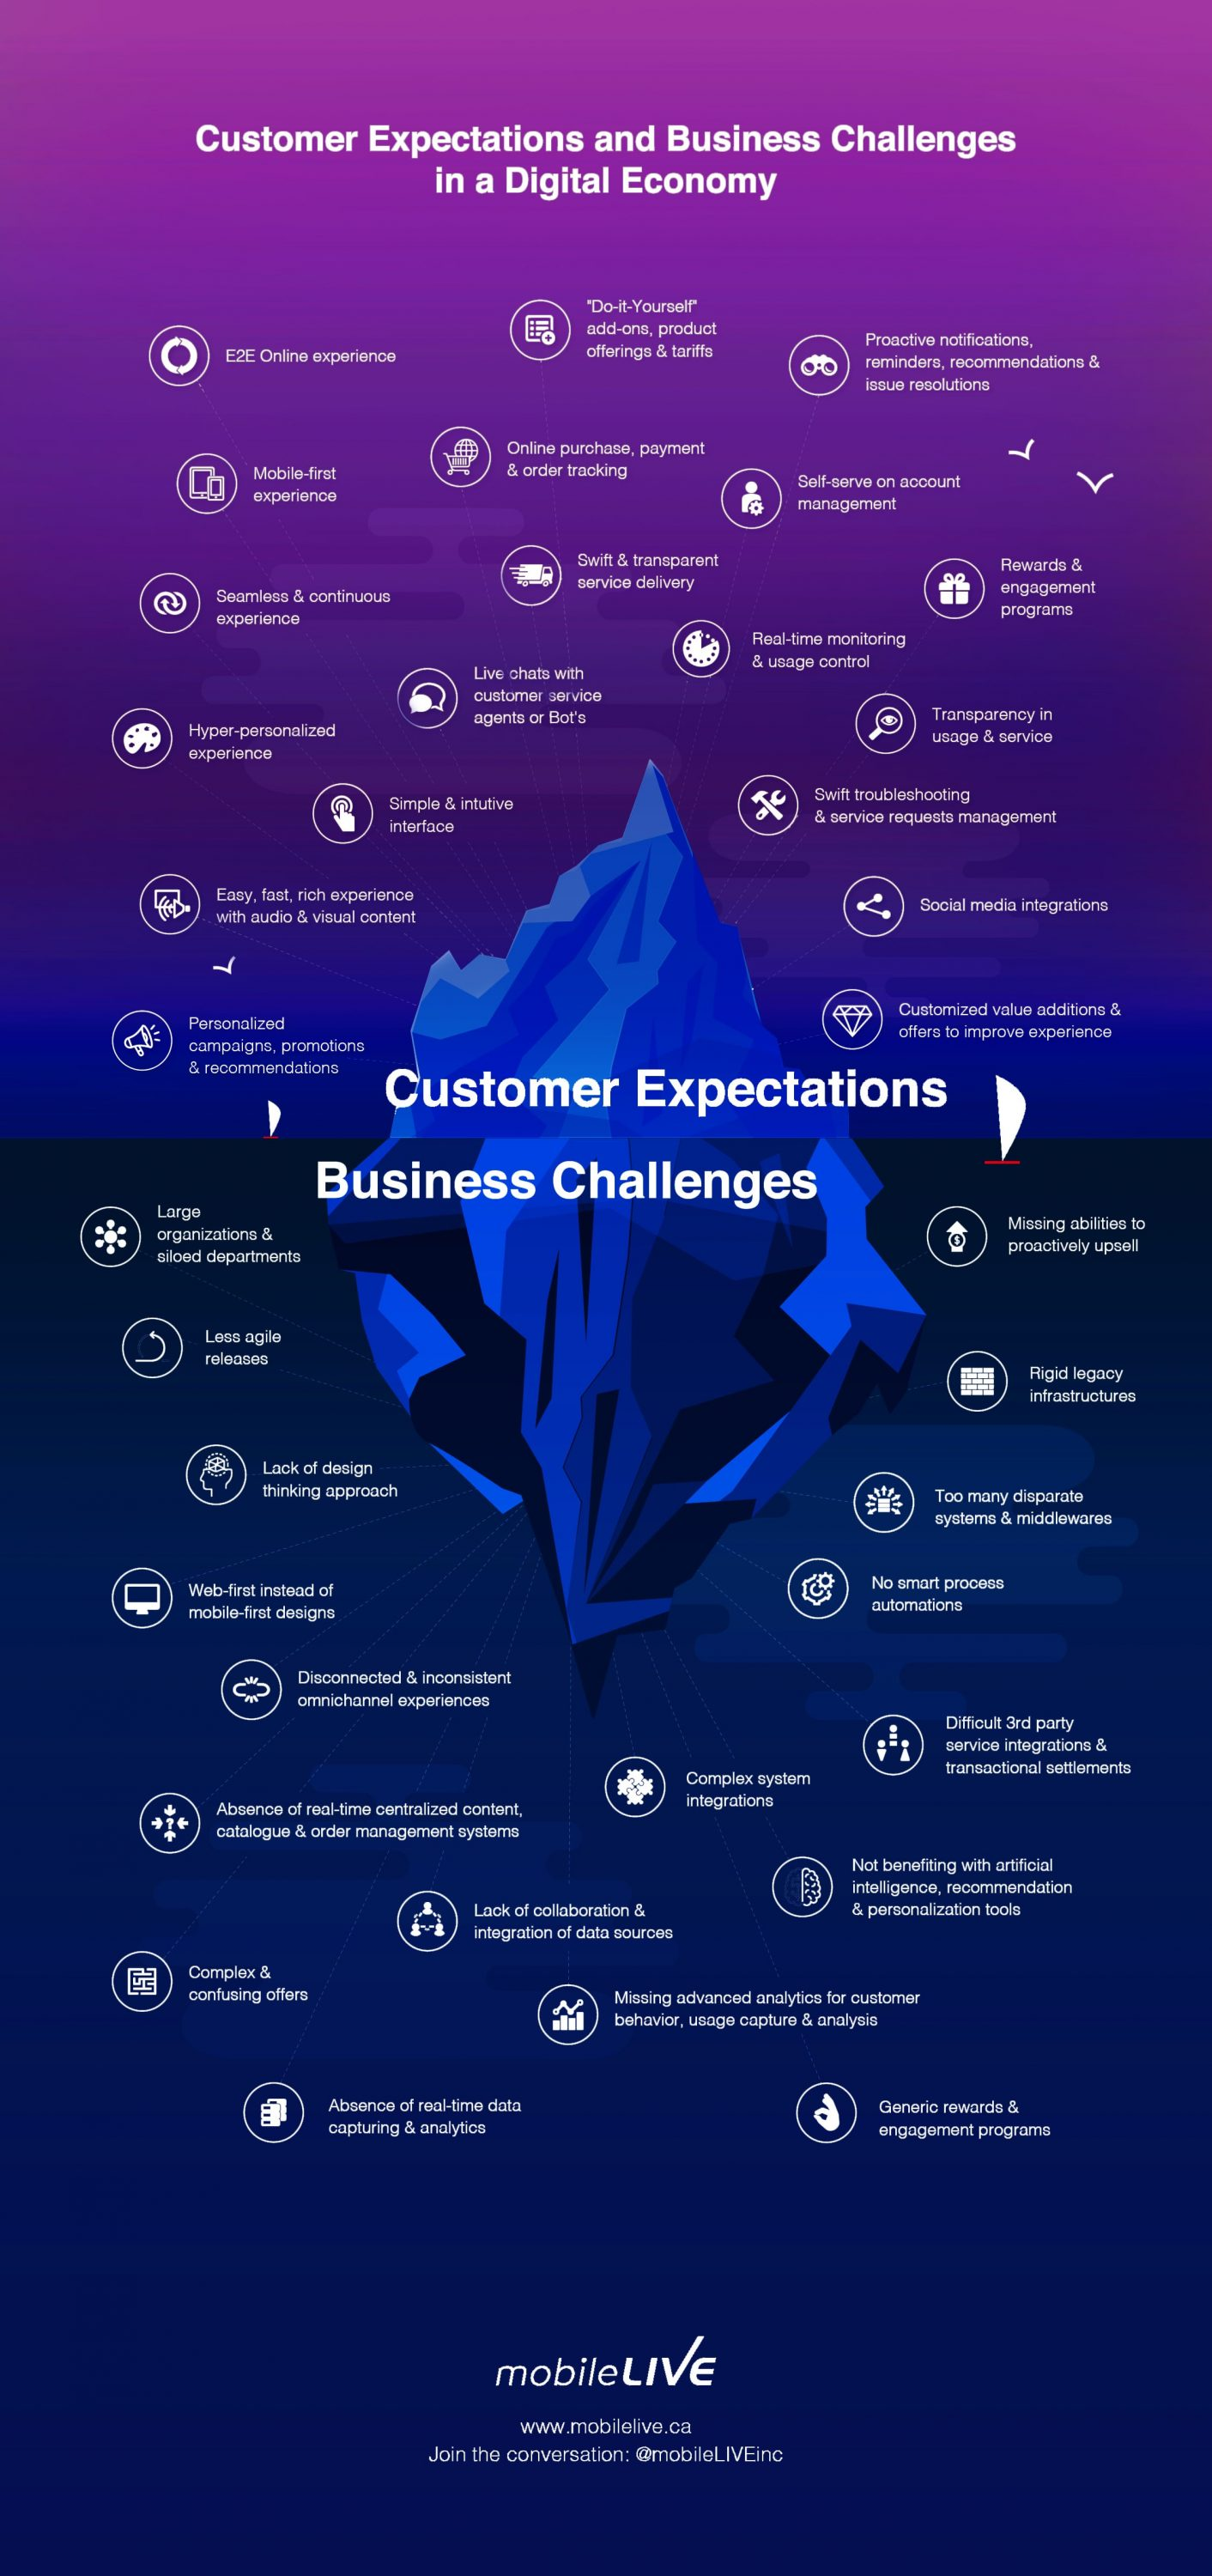 Customer Expectations & Business Challenges in a Digital Economy is a graphical representation that depicts the unique Customer Expectations and the associated Business Challenges faced in trying to meet them.